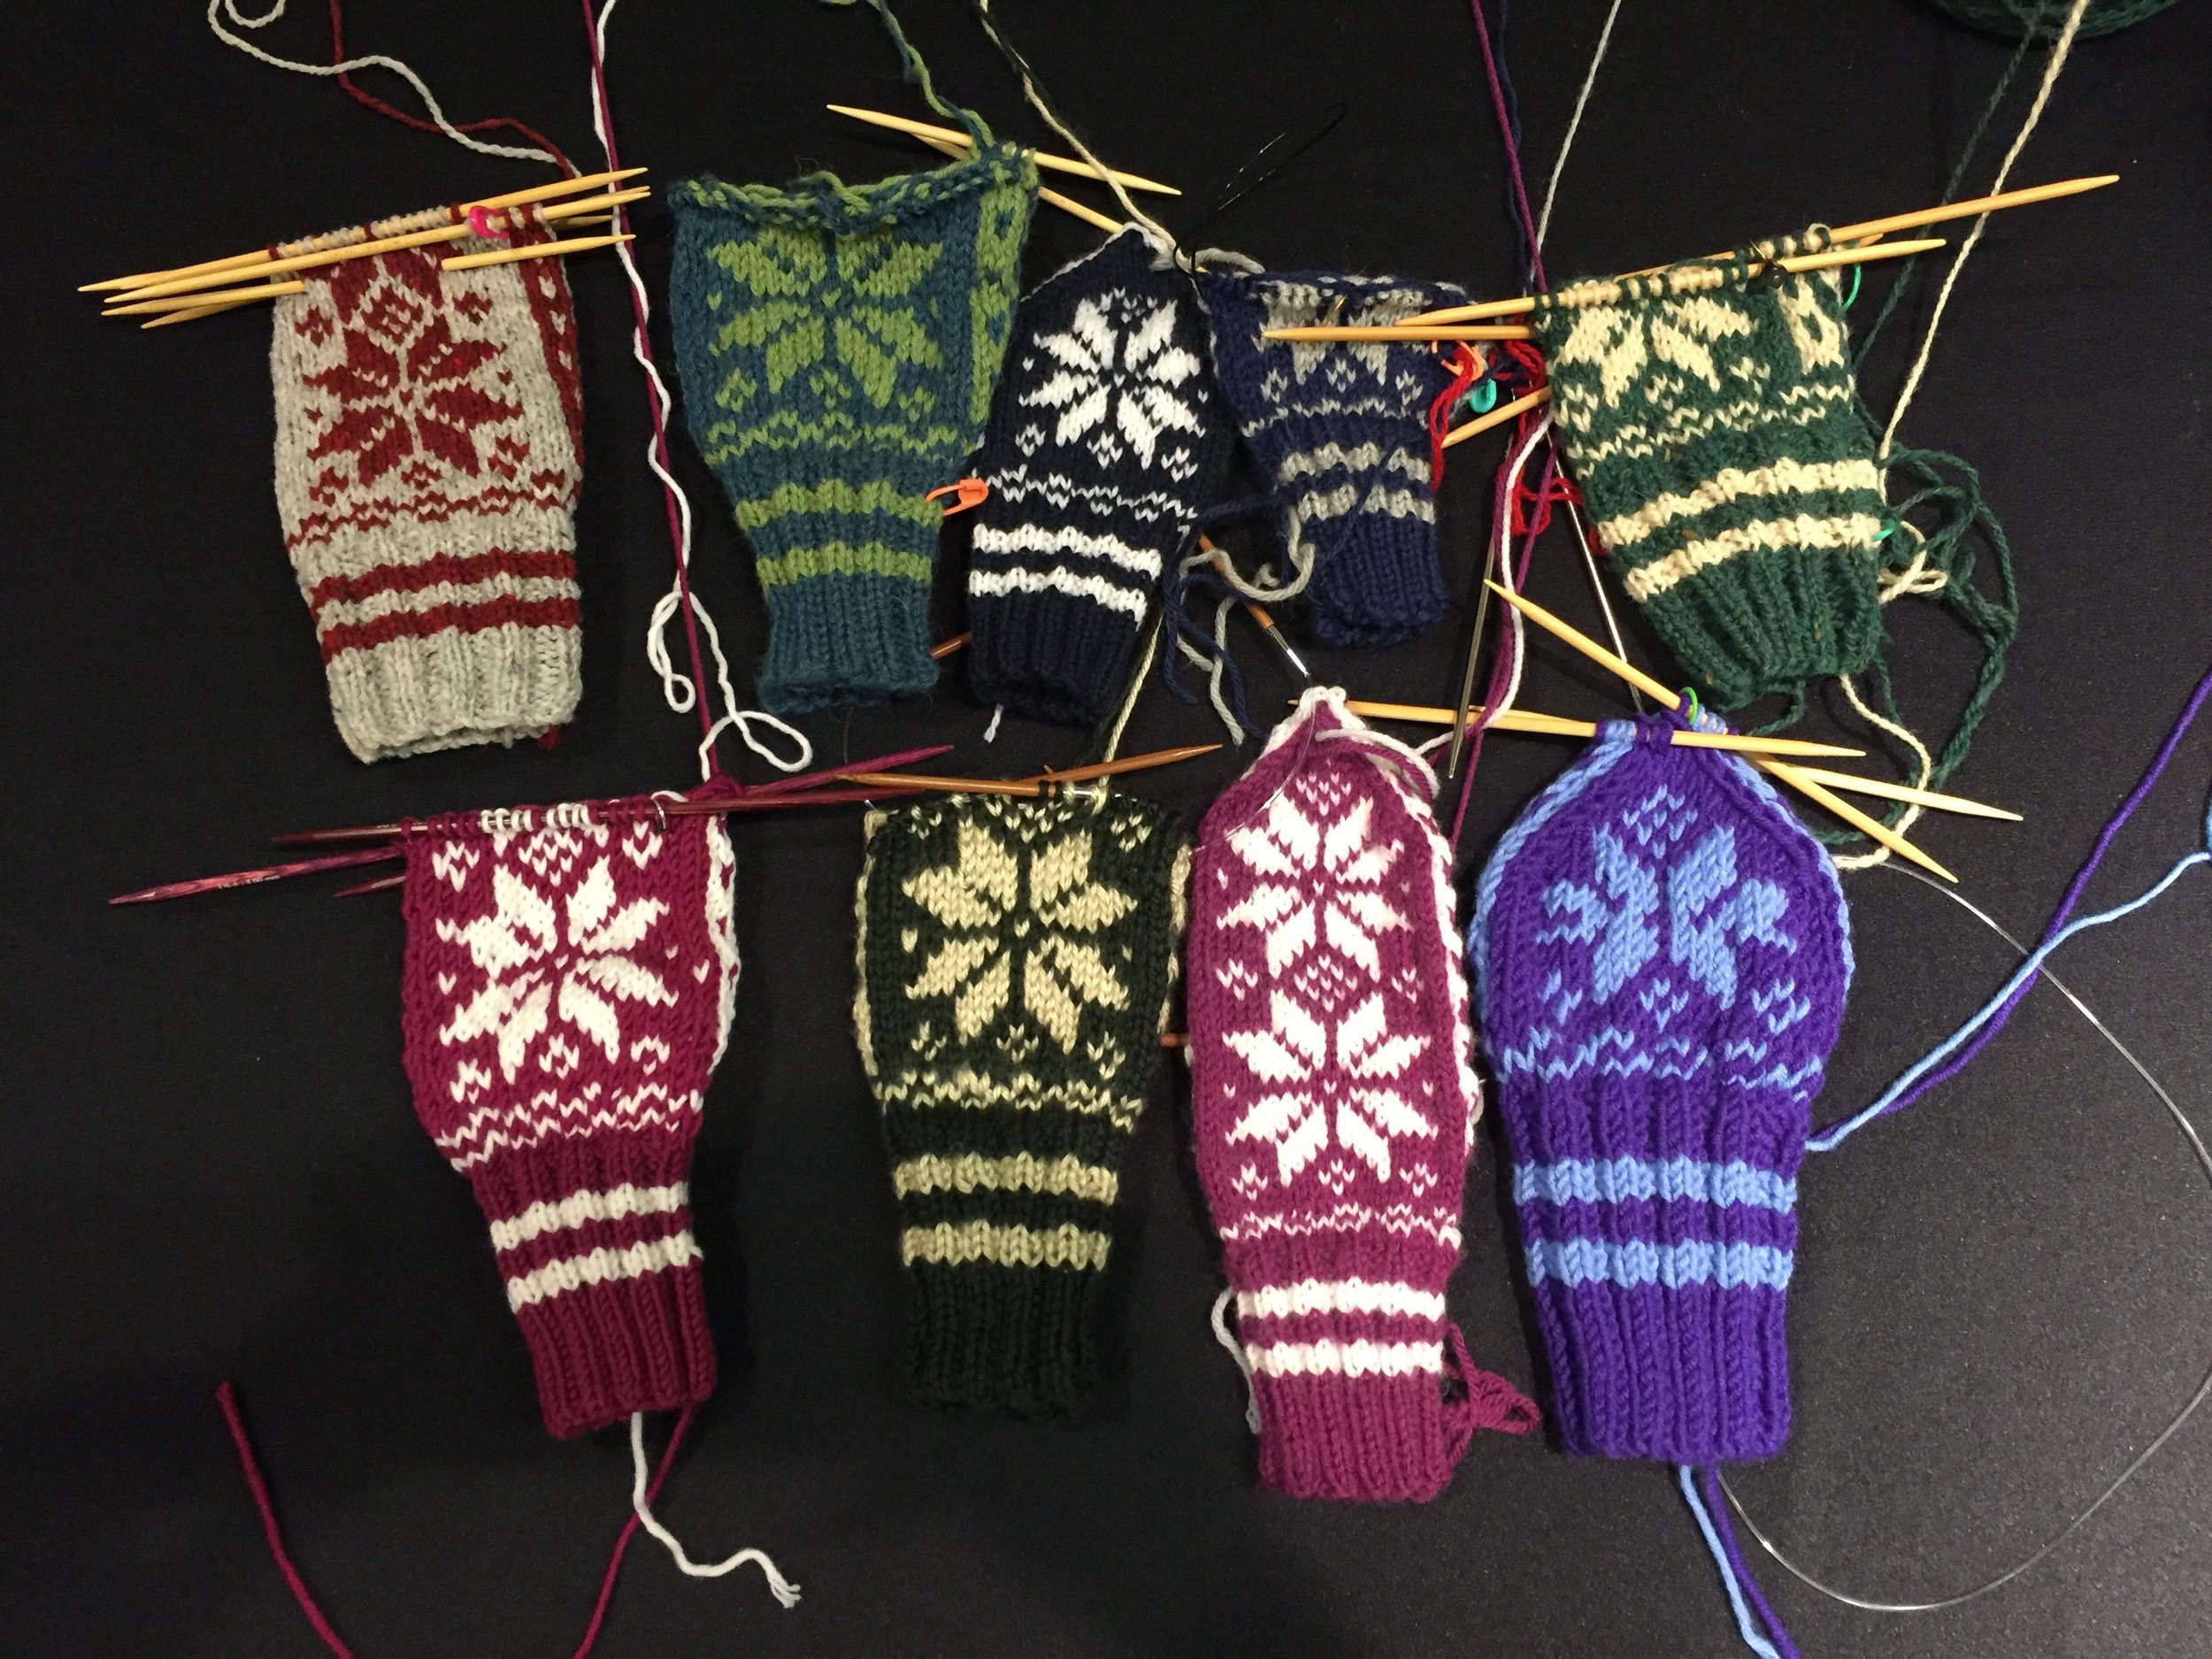 all of the student mittens! (note that I am apparently a super speedy knitter and got further than everyone else...#humblebrag)